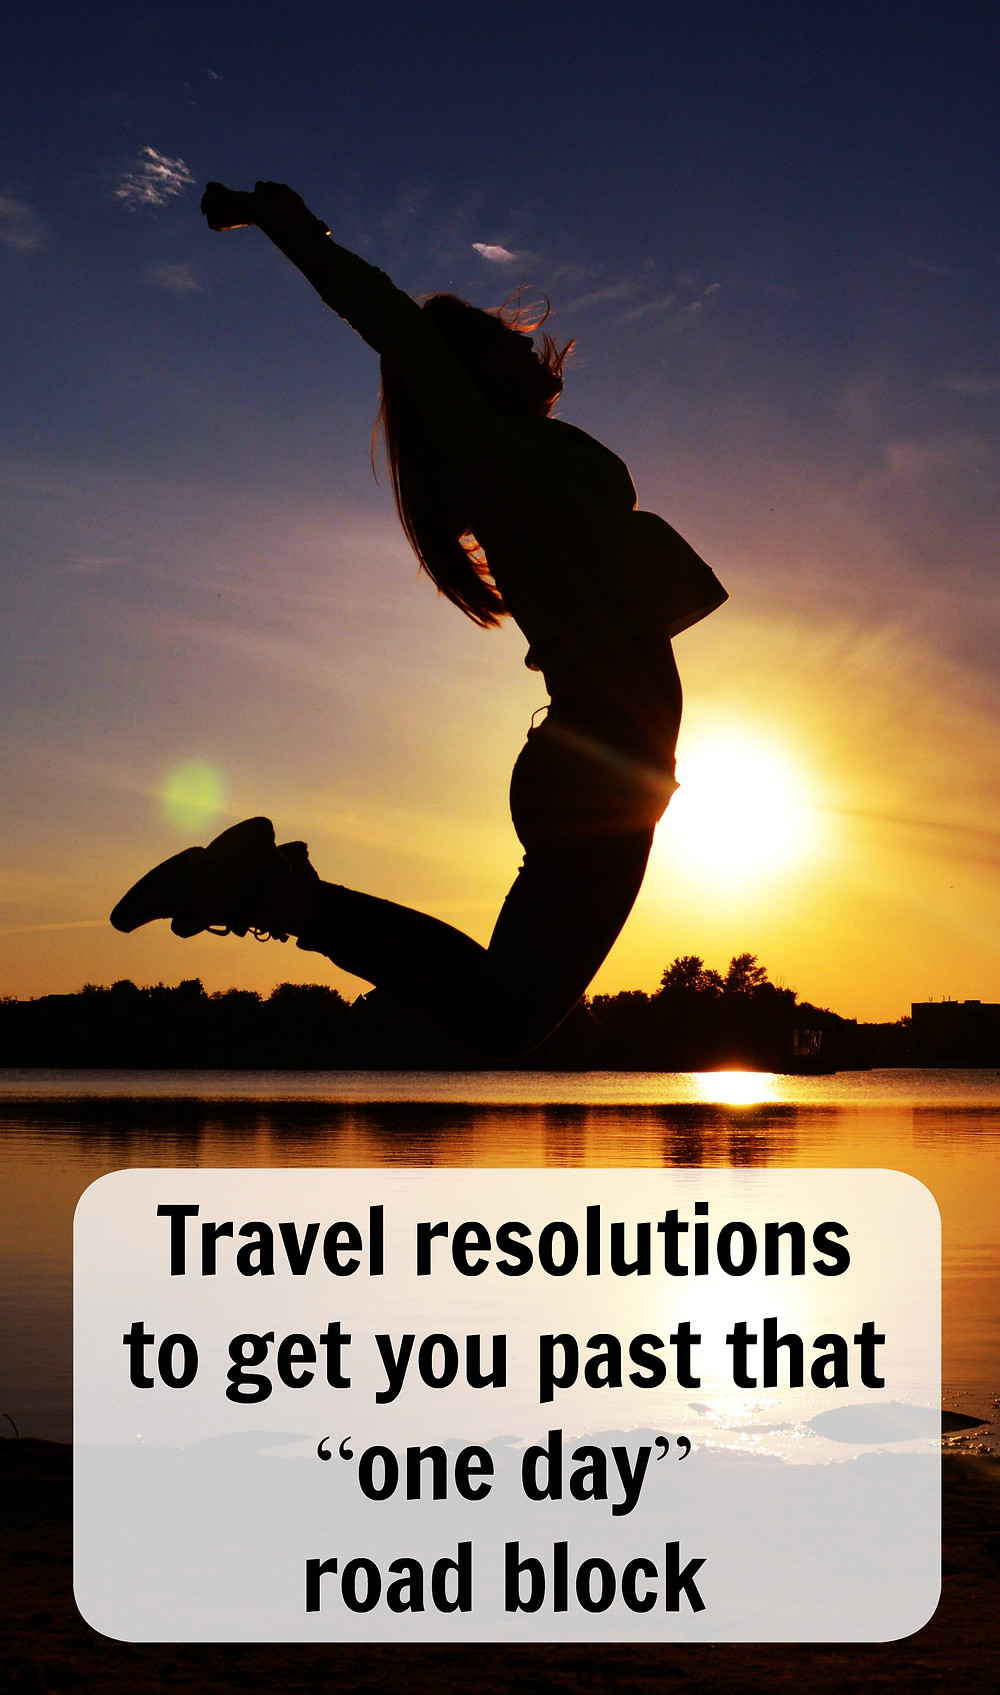 Travel resolutions to get you past that one day road block